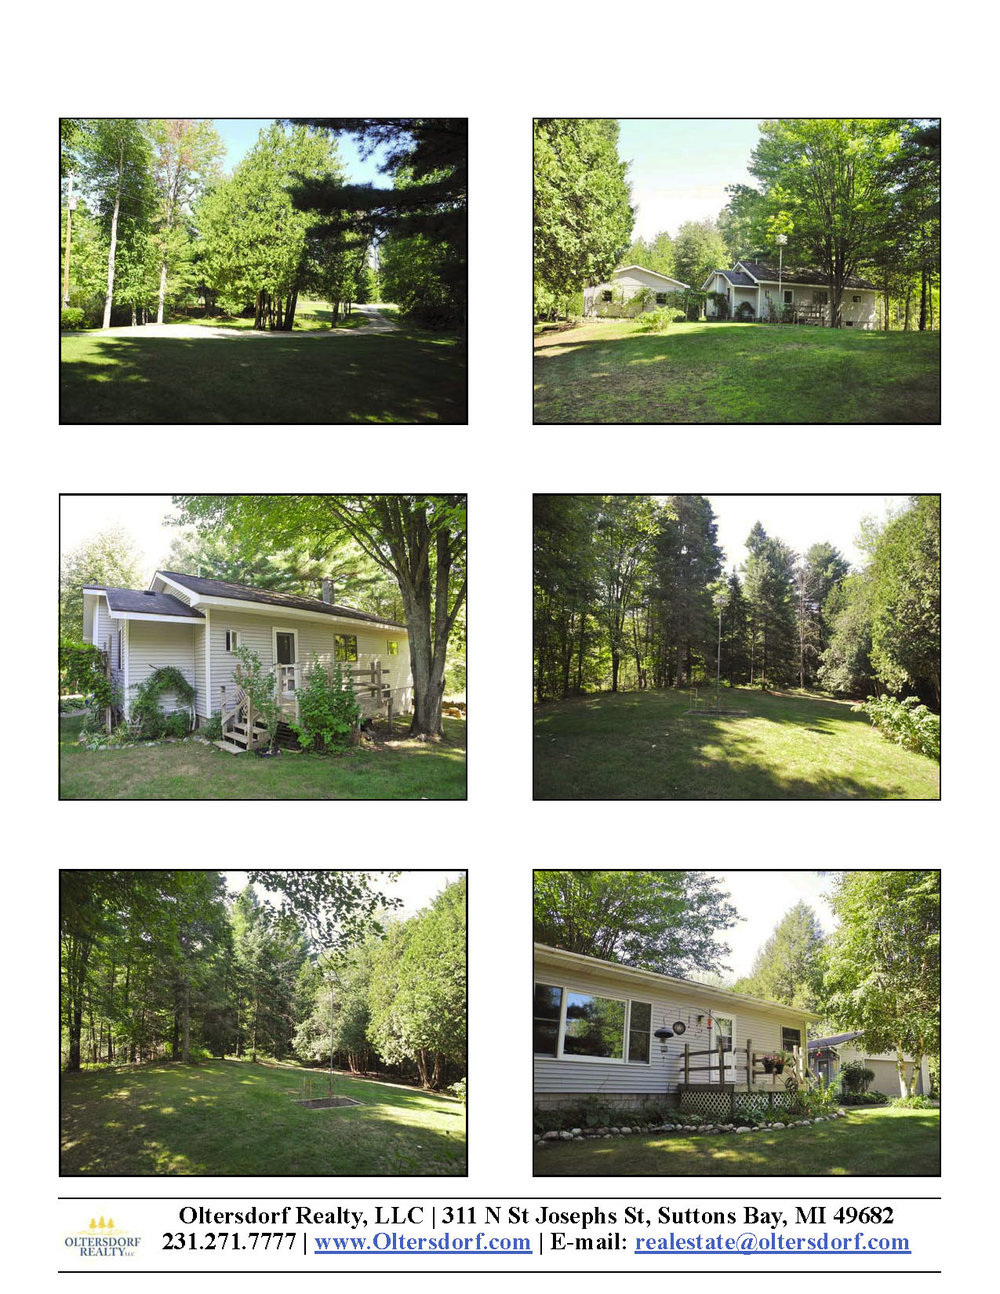 2566 S Pine View Road, Suttons Bay, MI – Affordable 3 Bedroom Suttons Bay Ranch Home for sale by Oltersdorf Realty - Marketing Packet (3).jpg